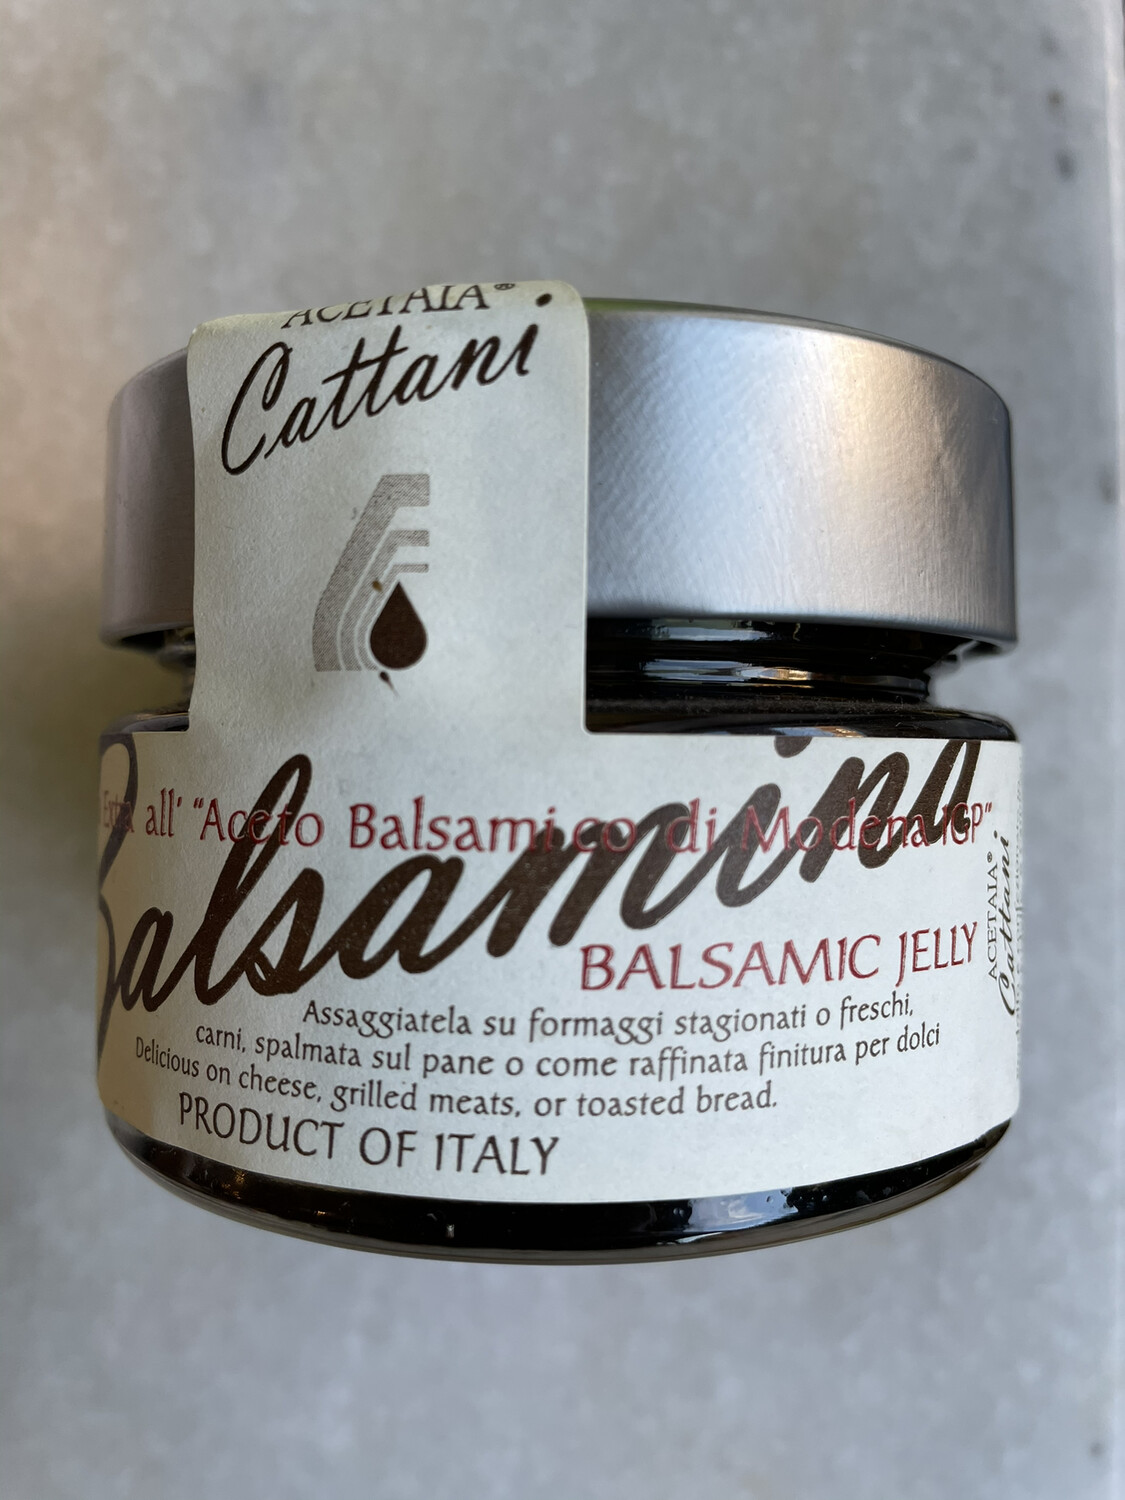 Cattani balsamic jelly